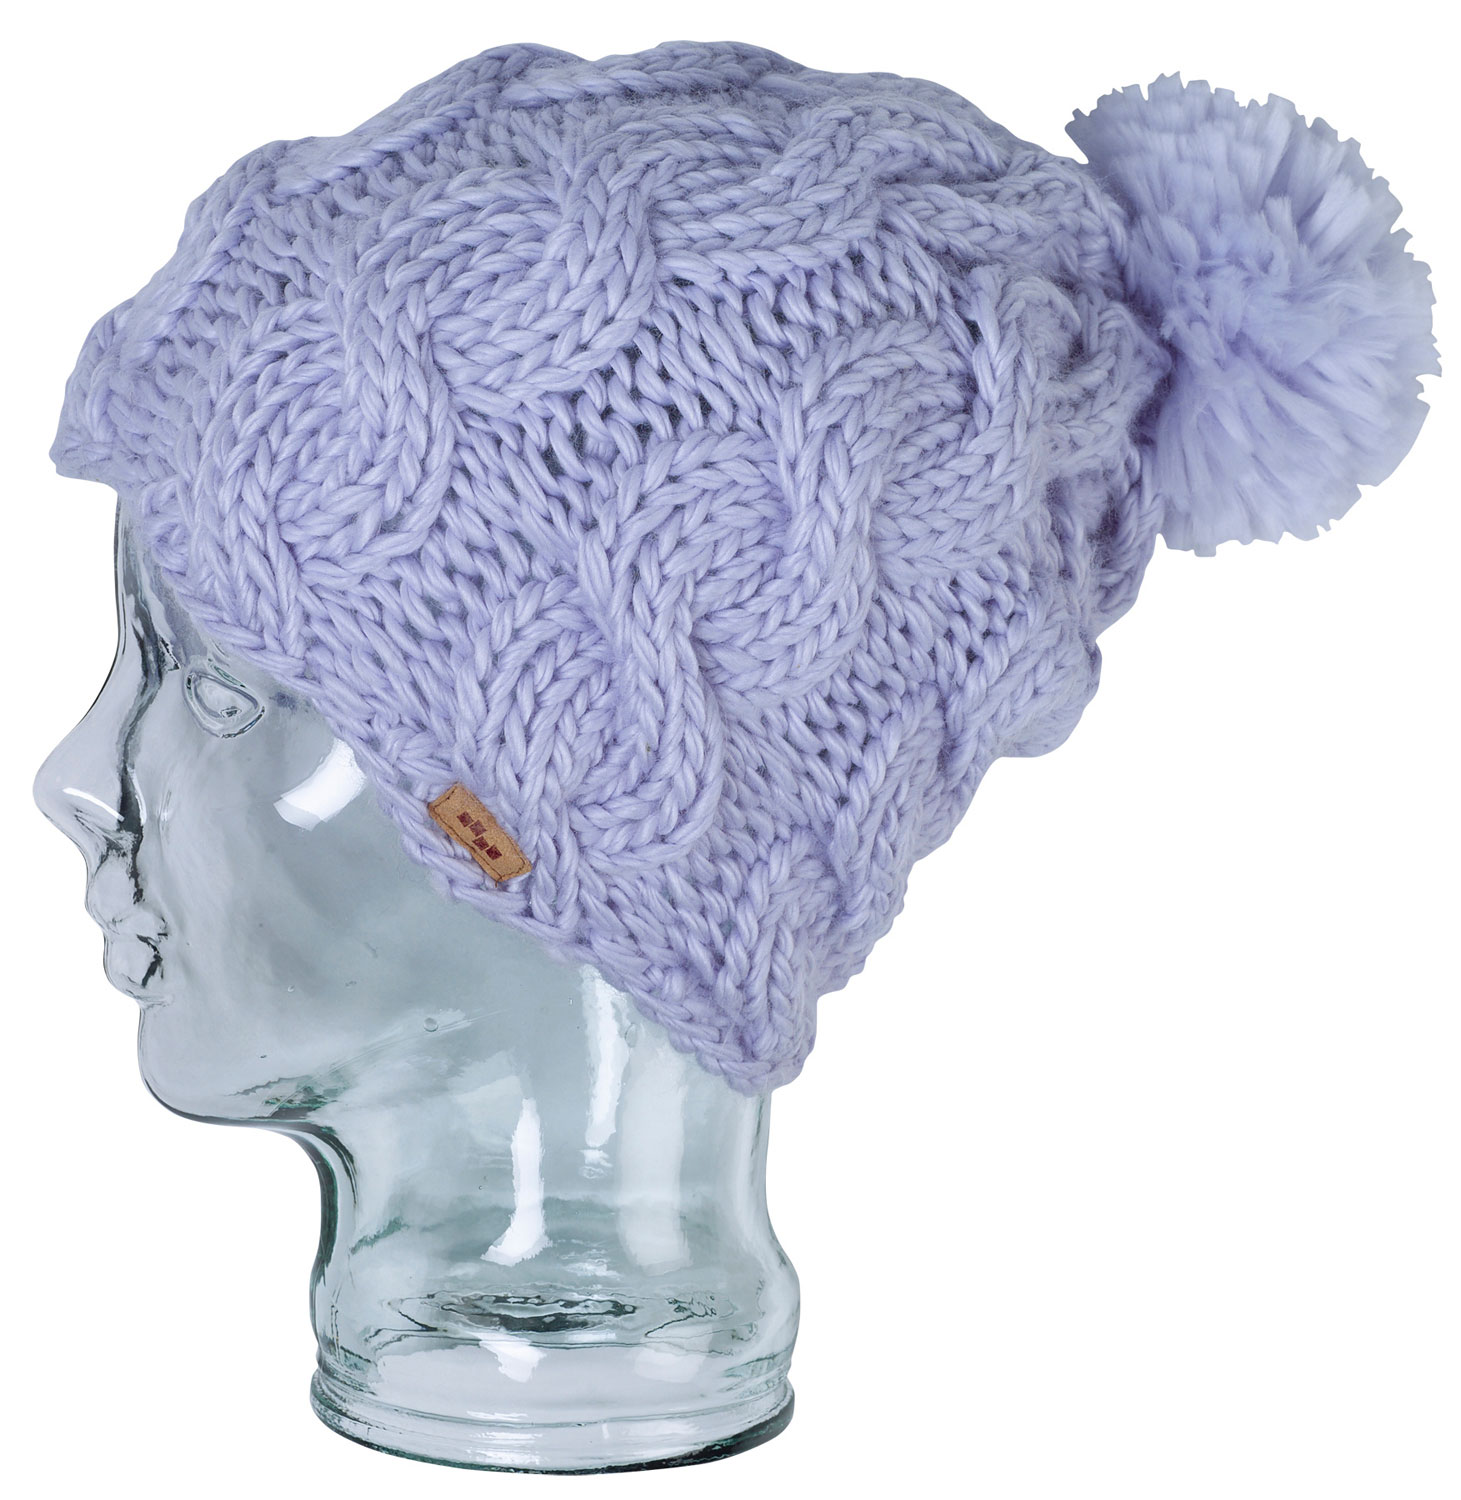 Snowboard Foursquare's Mop Top cable knit hat is the warm, comfortable choice for the sportswoman on the go. The Mop Top is machine-knit of soft, brushed acrylic, giving it remarkable durability and a plush feel. Easy to care for and machine-washable, the Mop Top has a crocheted seam edge, a deep-pile pompom on top, and an authentic Foursquare logo detail sewn in leather. The wide-spaced cable design is stylish but also gives excellent stretch for a great-fitting hat you'll love. - $12.95